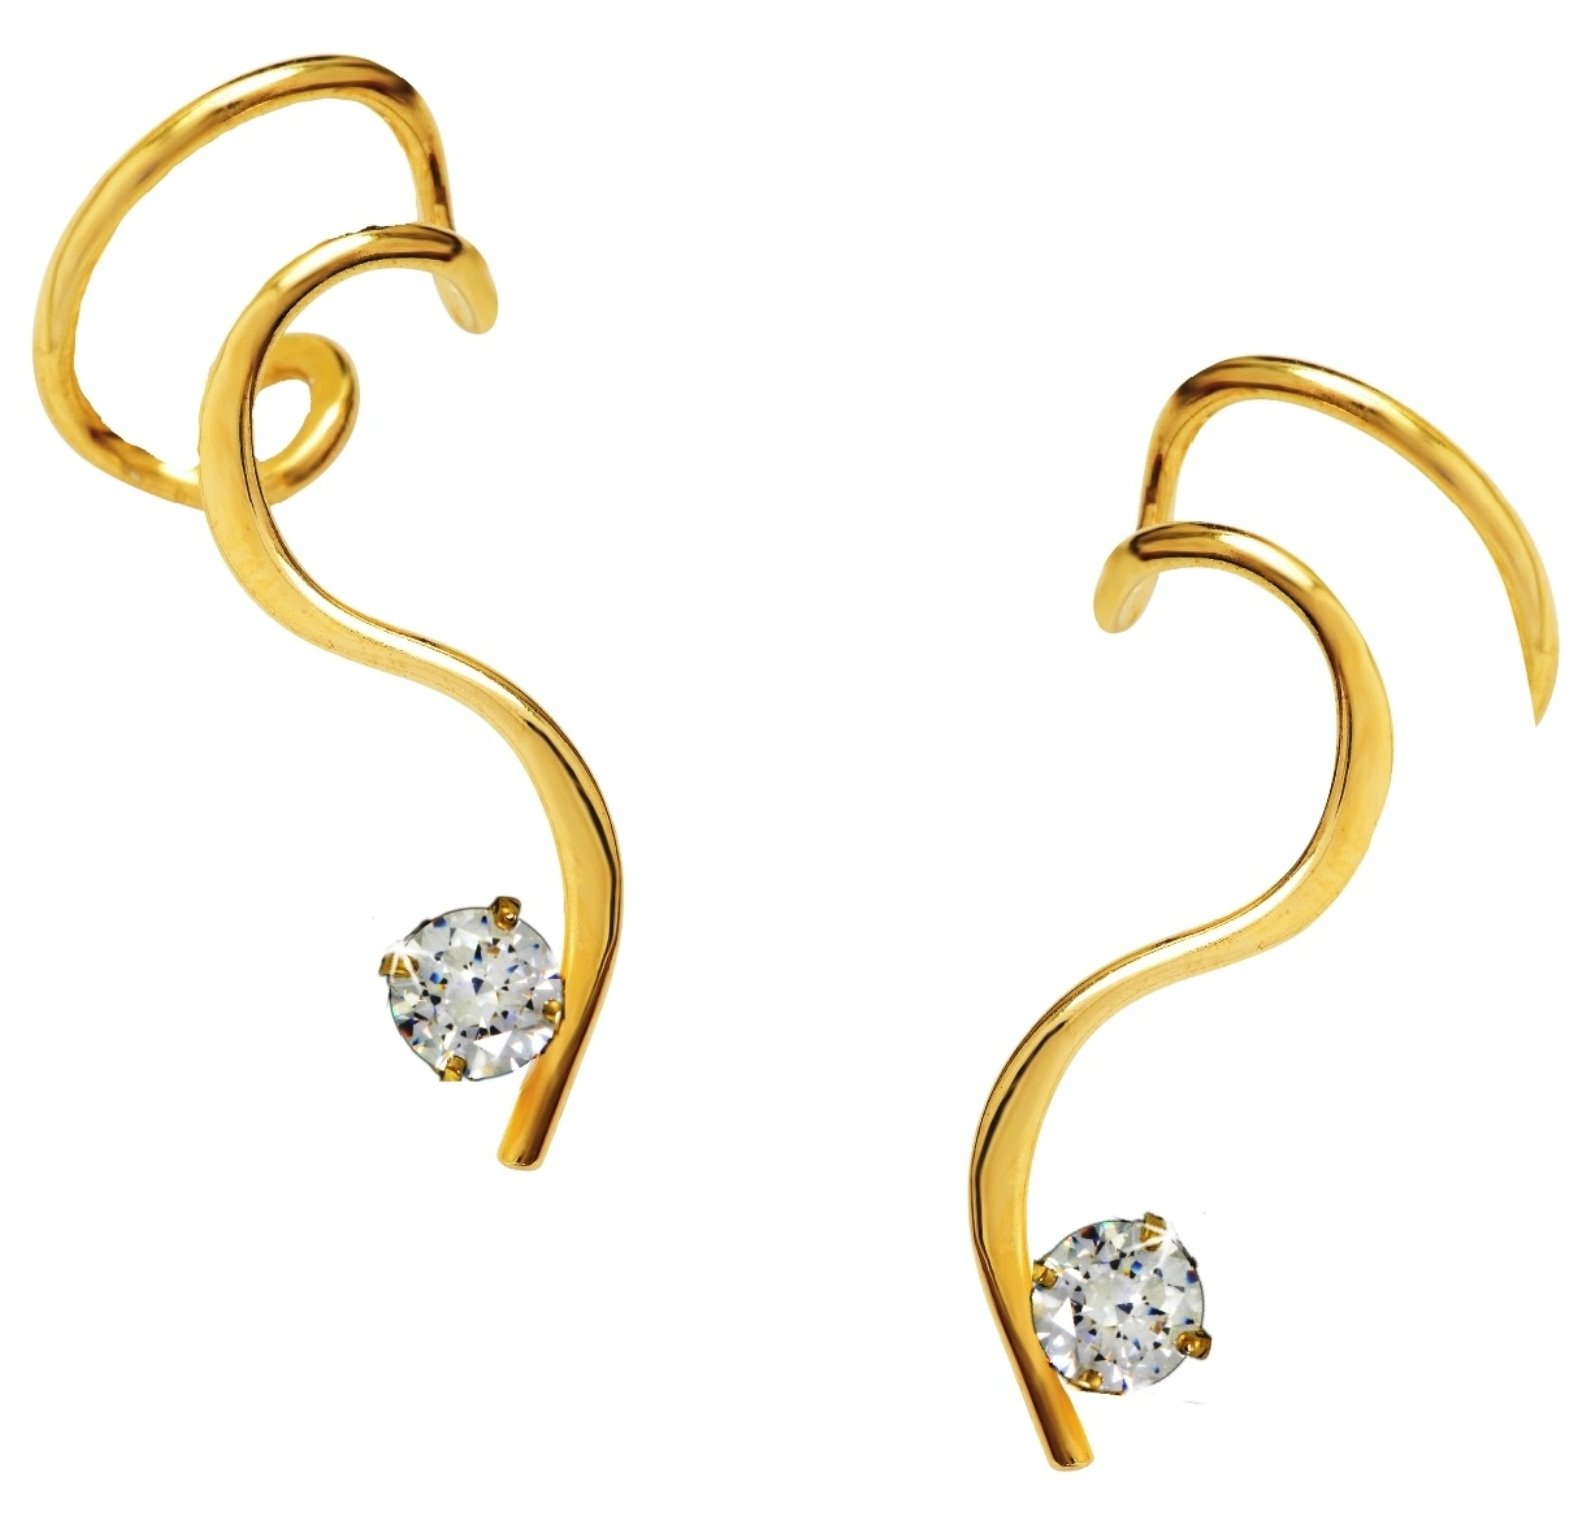 Ear Charms Ear Cuff Simple 'S' with CZ Non-pierced Earring Wraps 'One-Liner' Pair Gold on Silver